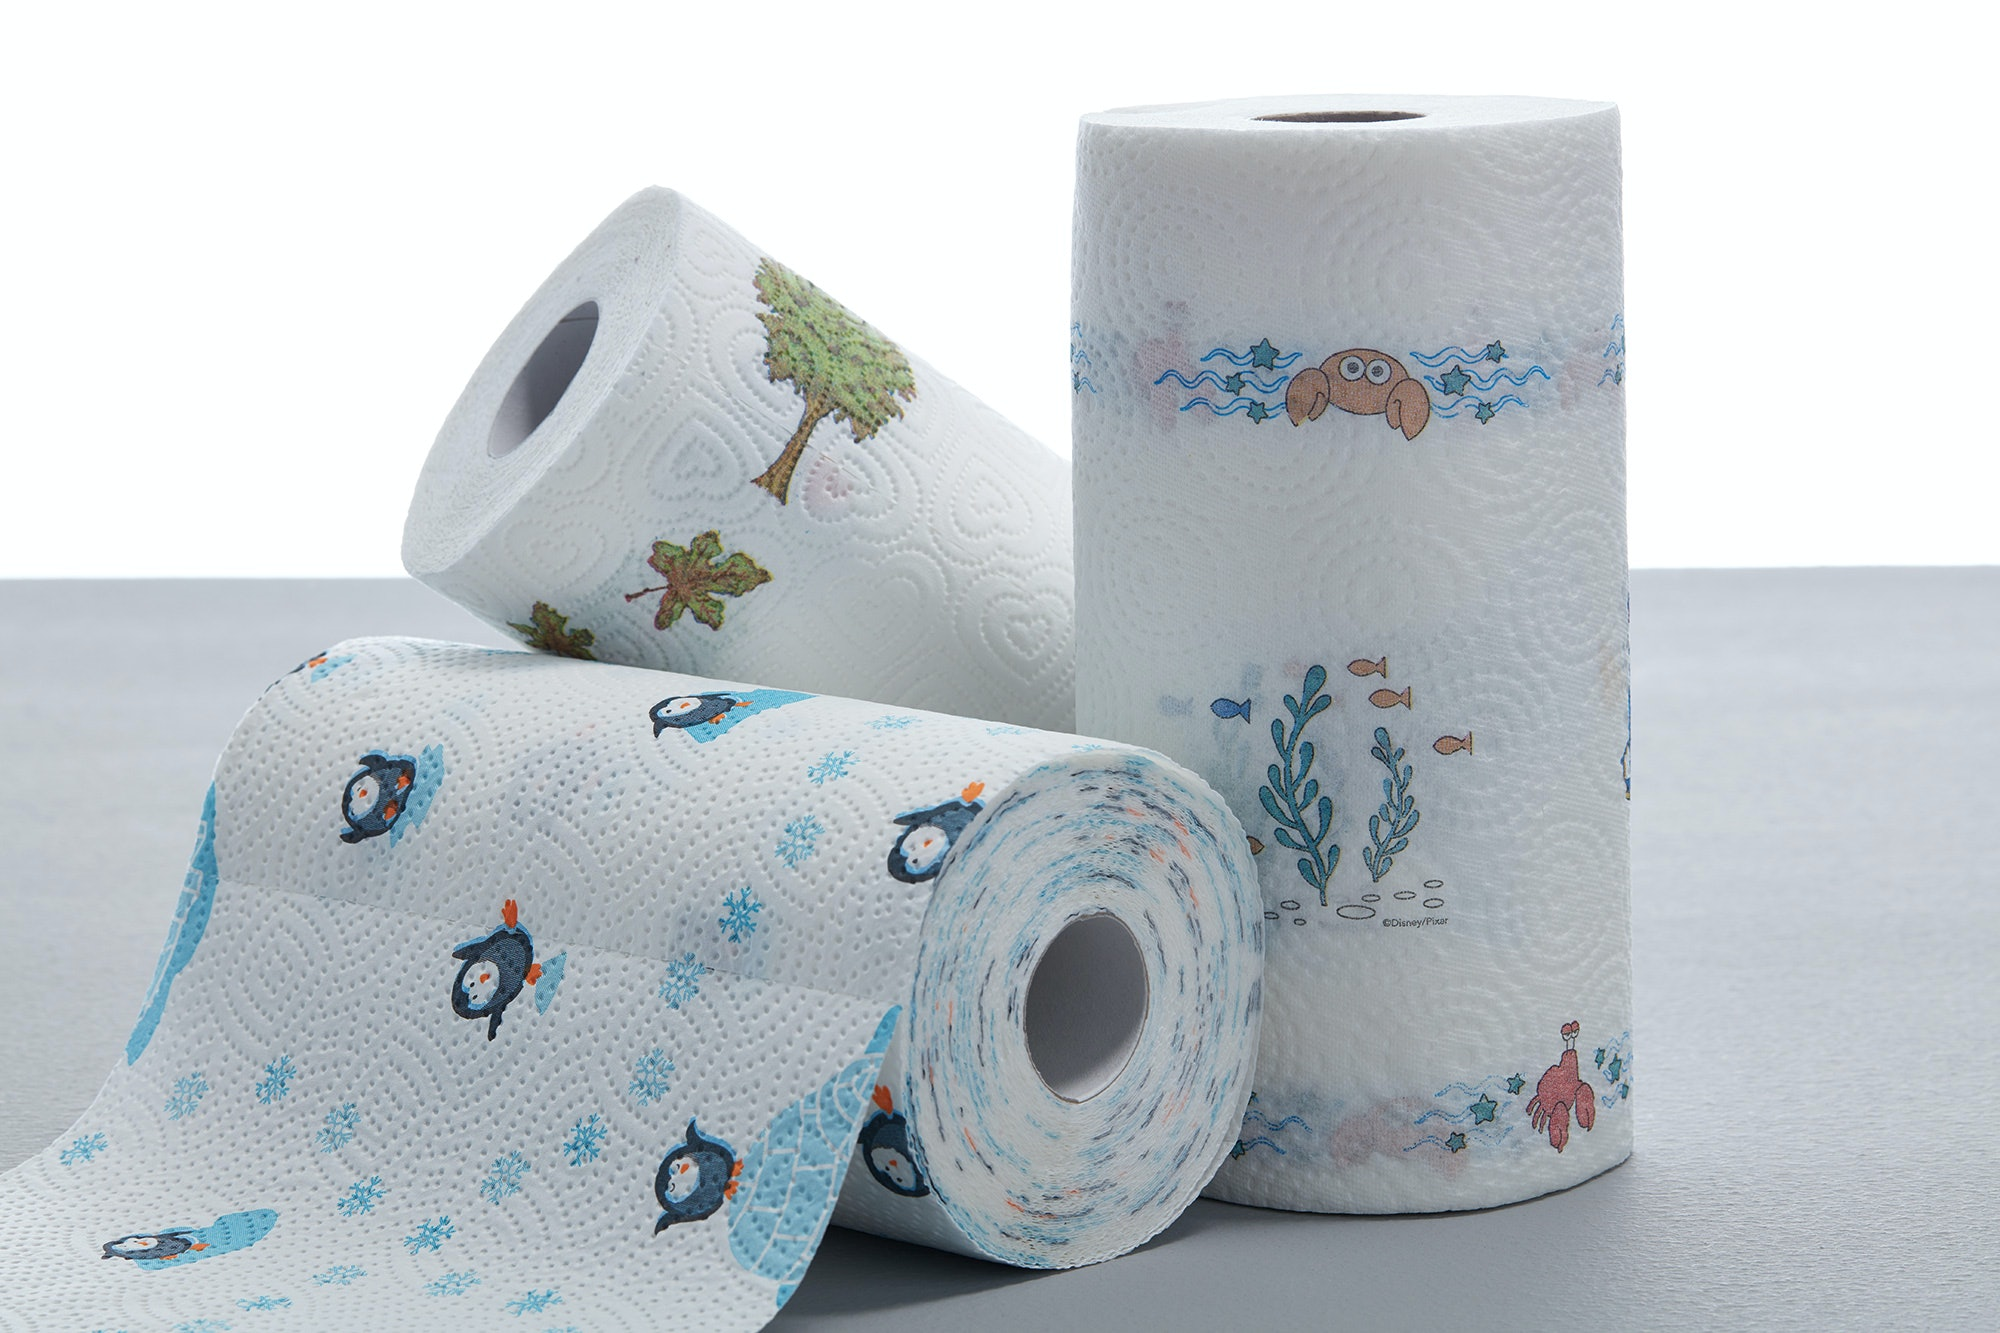 Flexographic Printing Inks for the Tissue Industry